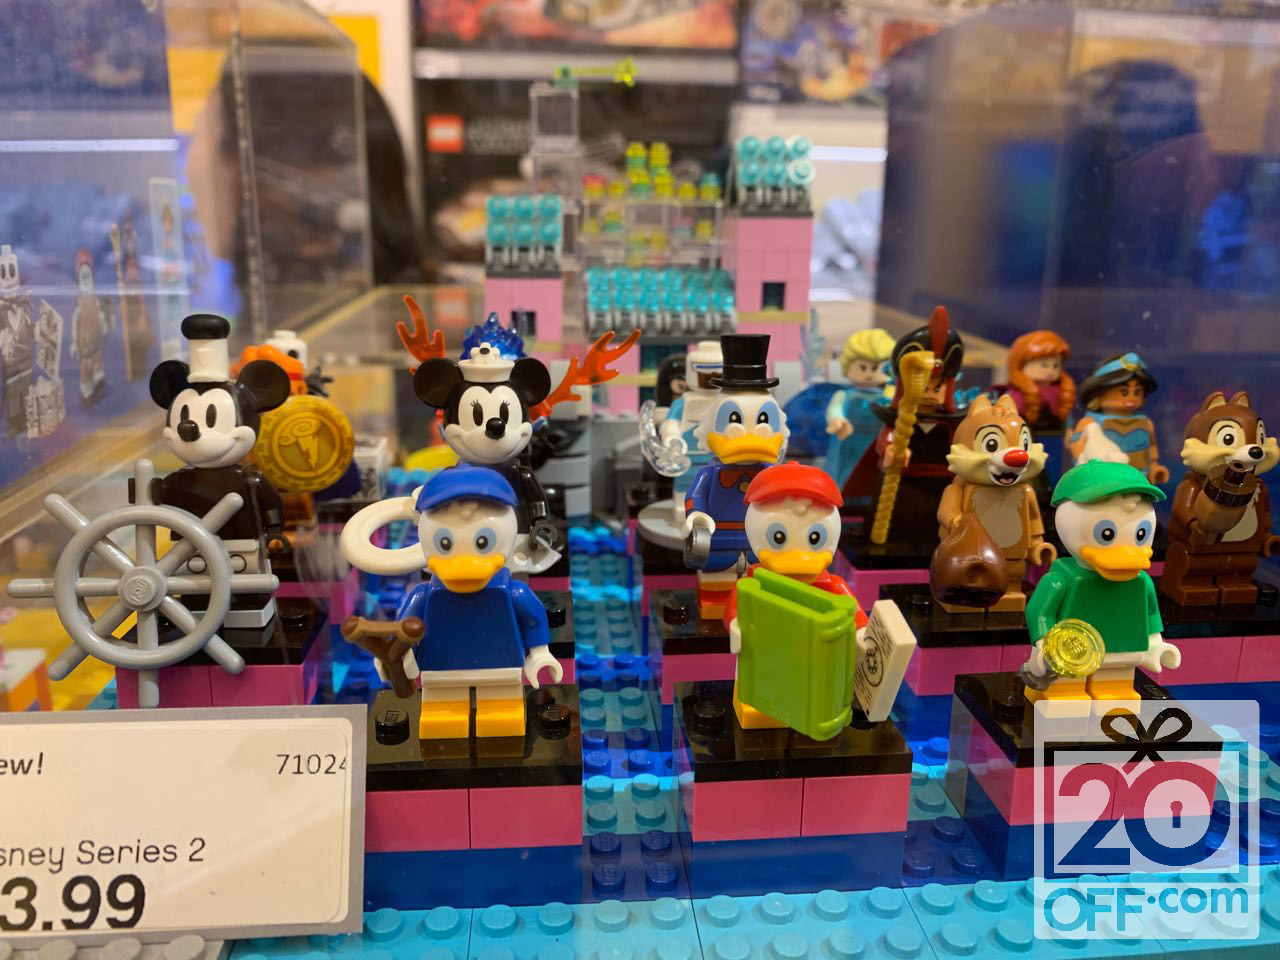 LEGO Disney Series 2 Minifigures